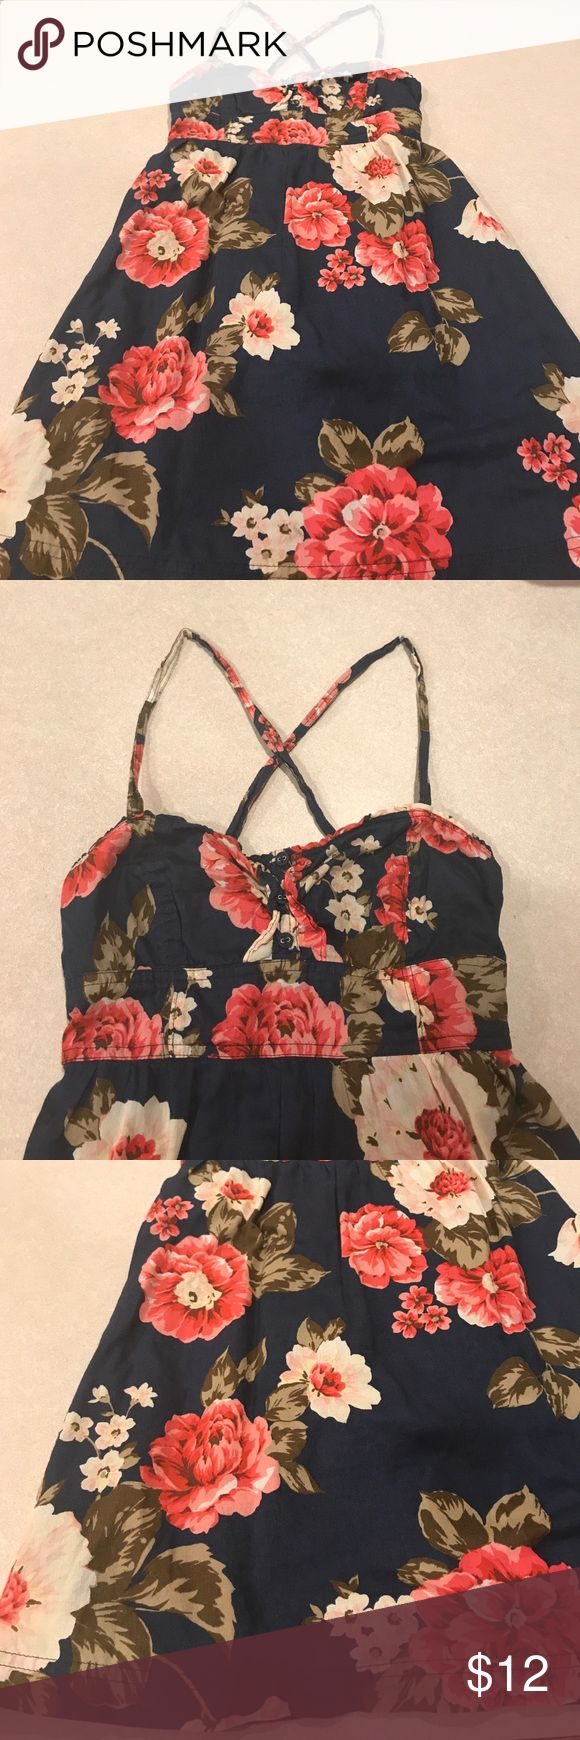 Abercrombie Dress Super cute flower print dress in excellent condition. Has lots of stretch to the back bust area. It's a size xl from Abercrombie kids. It fits me perfect and I'm a size small/  x-small. It's 29 inches from top of strap to bottom and 13 inches from armpit to armpit with lots of stretch. Let me know if you have any questions. Abercombie Kids Dresses